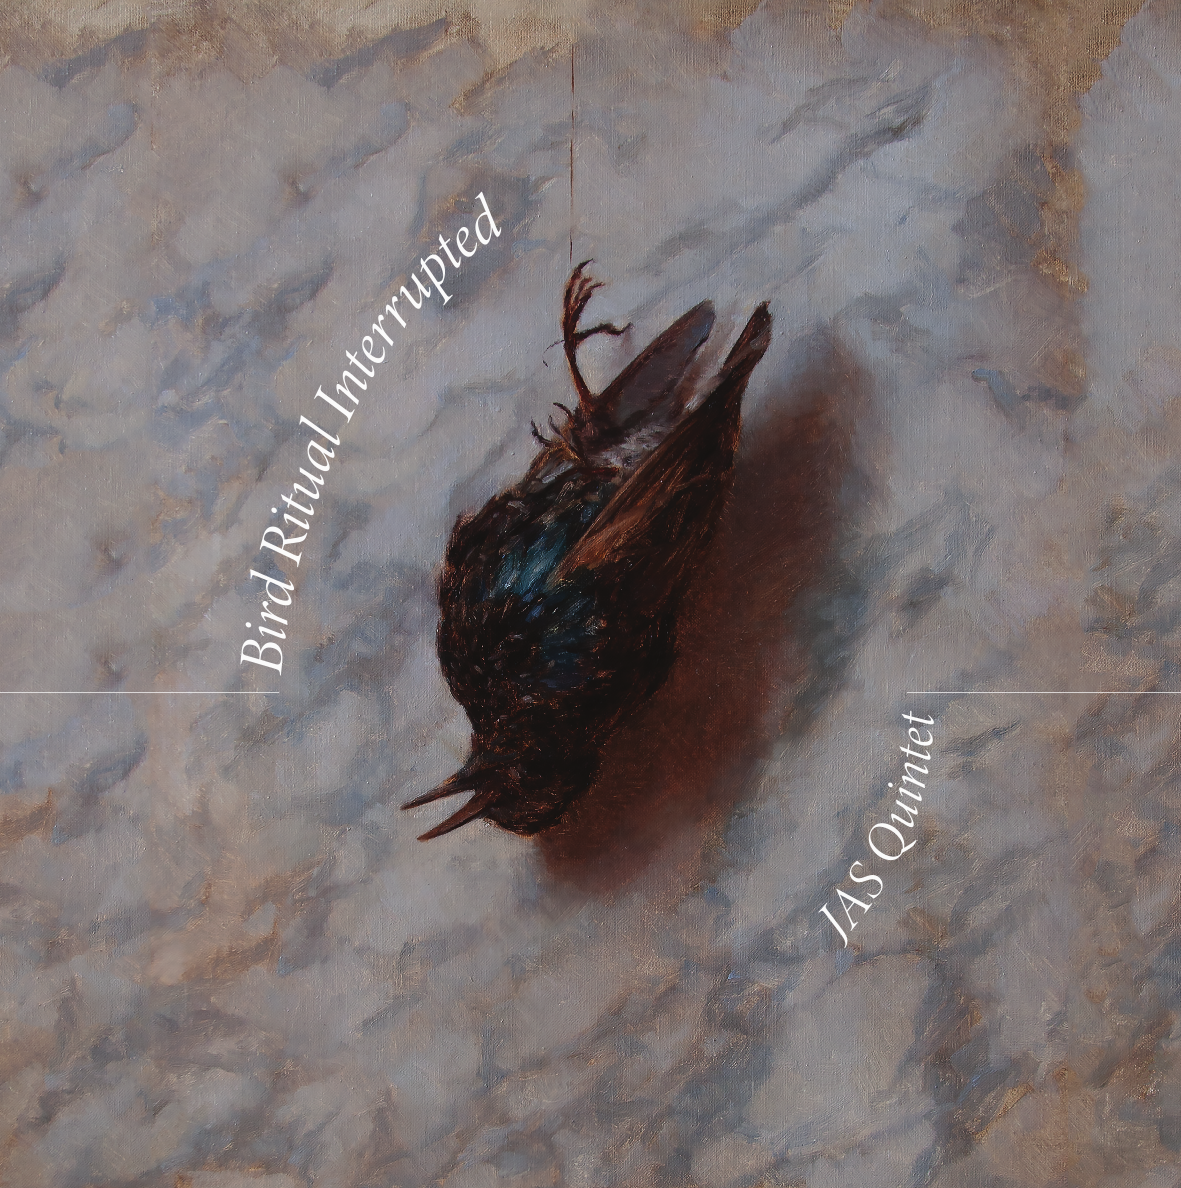 """JAS Quintet """"Bird Ritual Interrupted"""" cover artwork by  Anna Youngers  and design by Connor Burtis"""